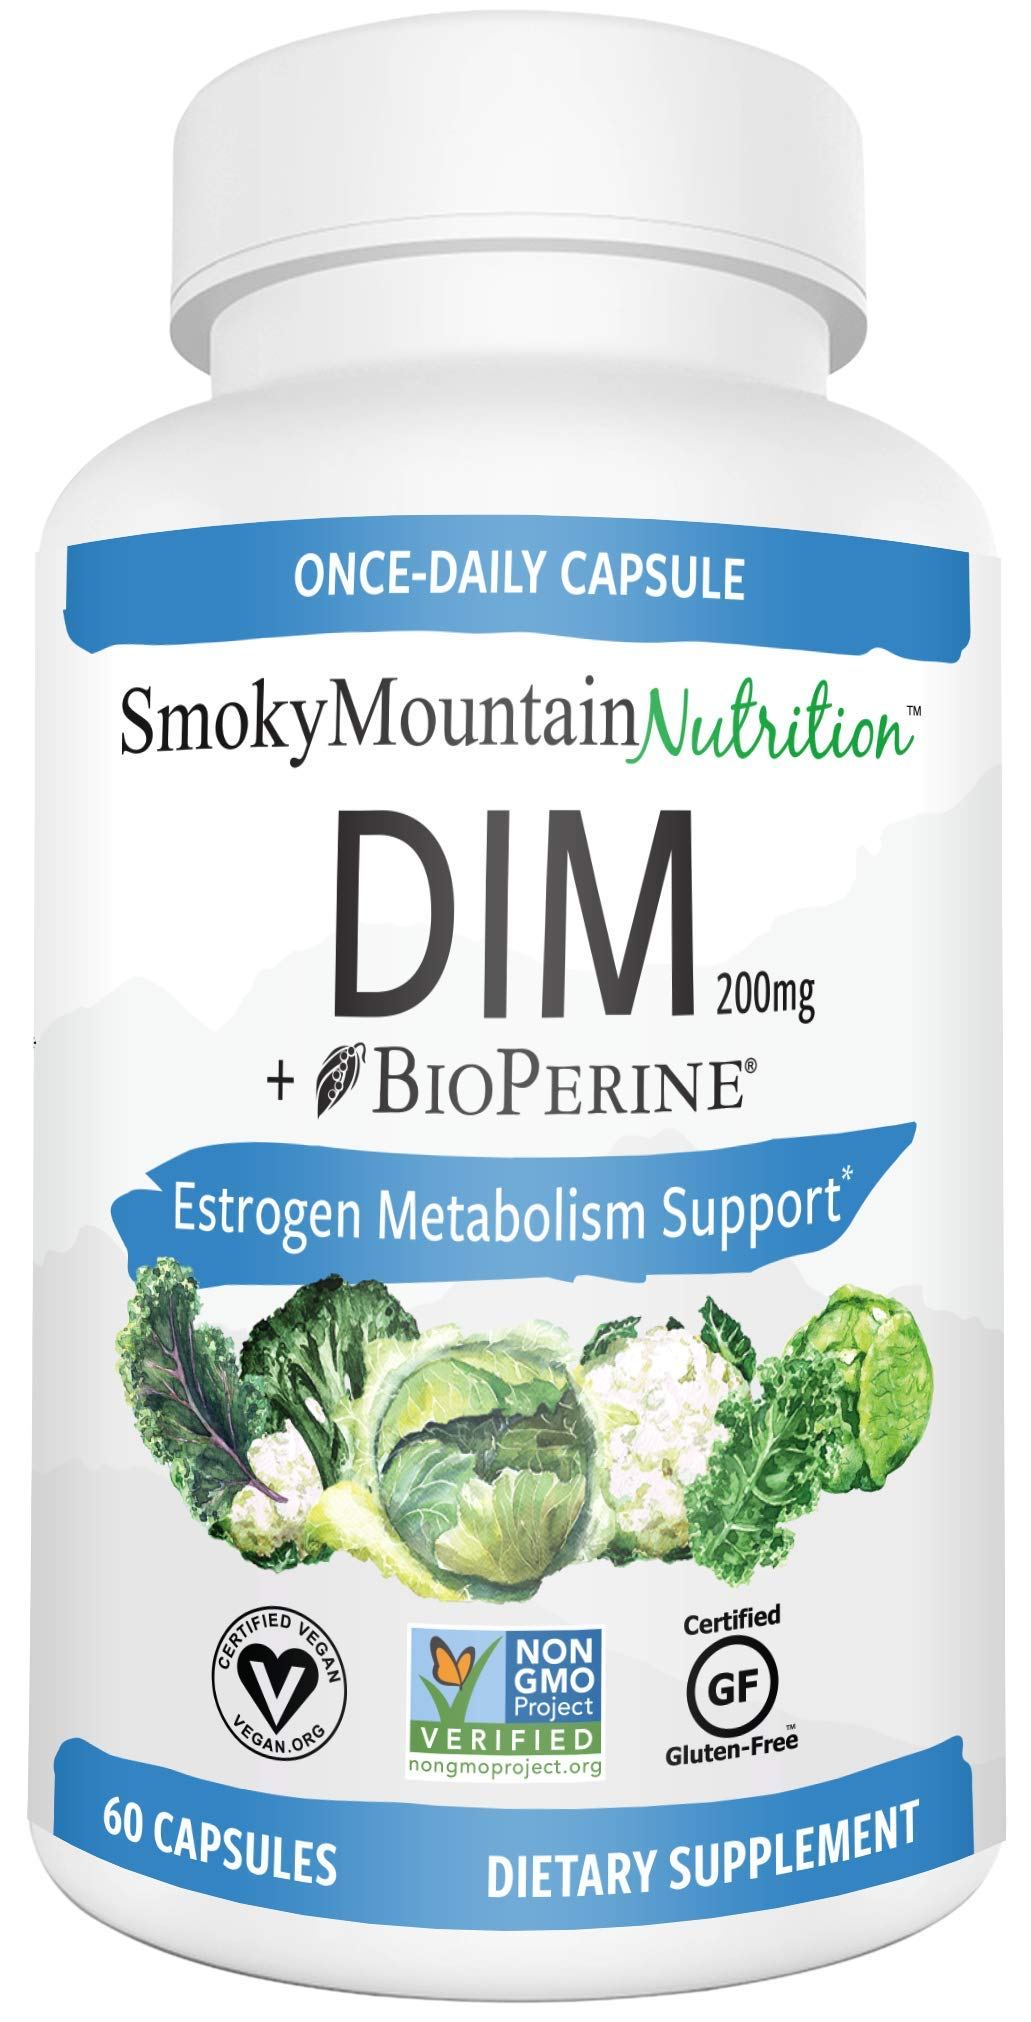 DIM Supplement 200mg - DIM Diindolylmethane Plus BioPerine 60-Day Supply of DIM for Estrogen Balance, Hormone Menopause Relief, Acne Treatment, PCOS, Bodybuilding by Smoky Mountain Naturals